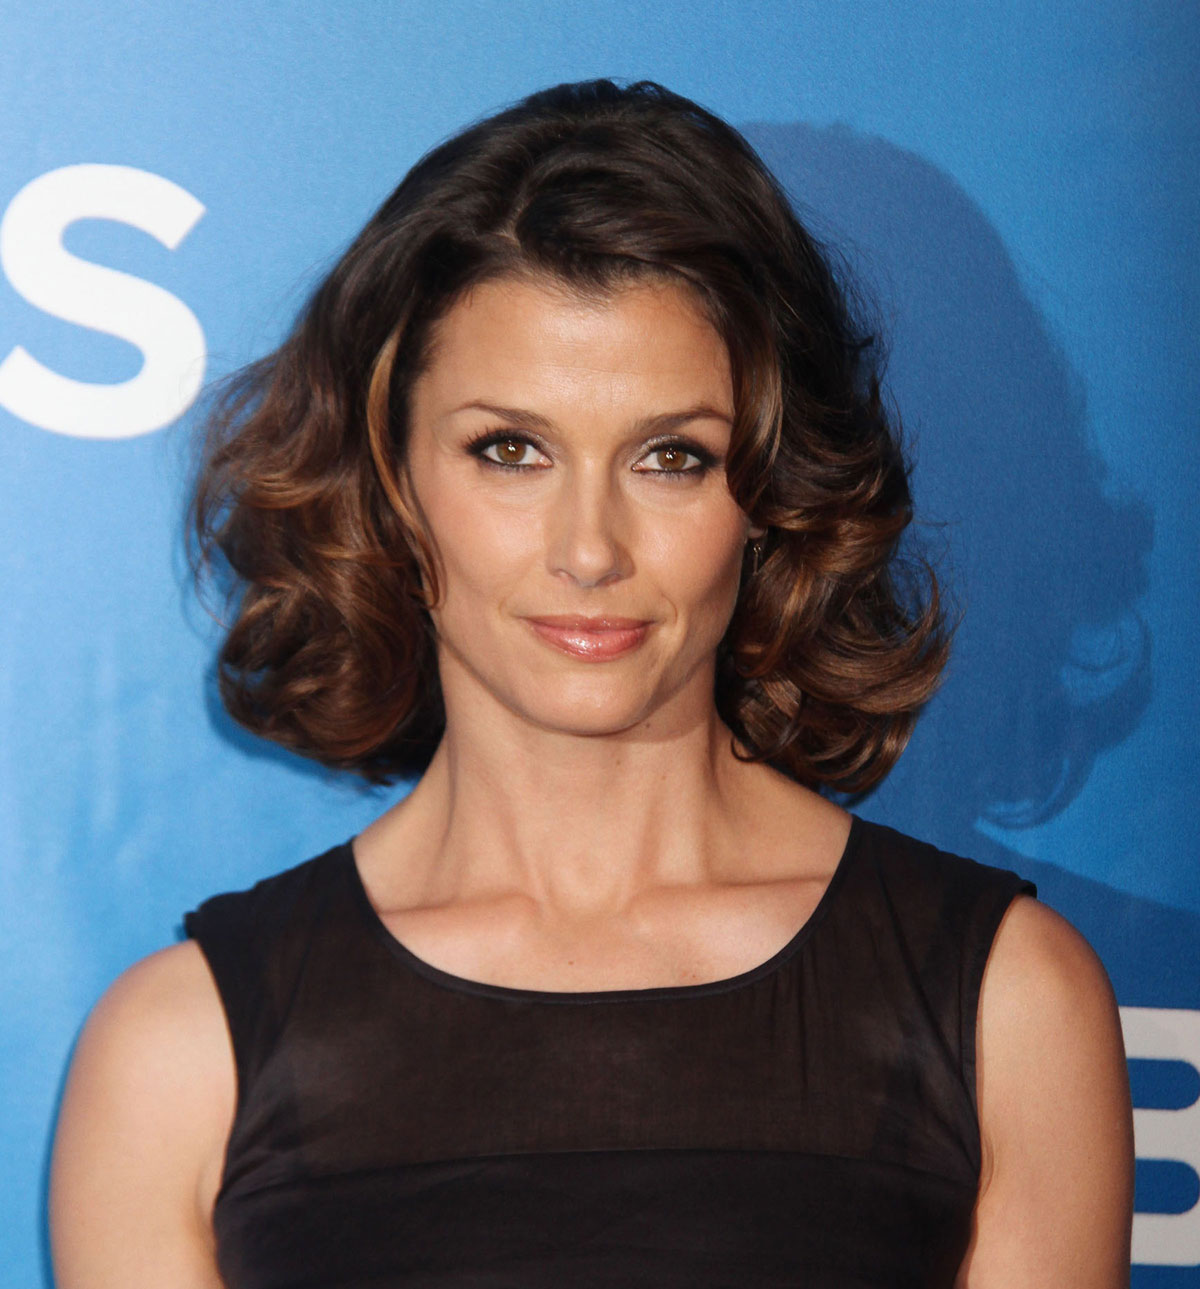 The 45-year old daughter of father Edward Bradley Moynahan and mother Mary Bridget Moynahan